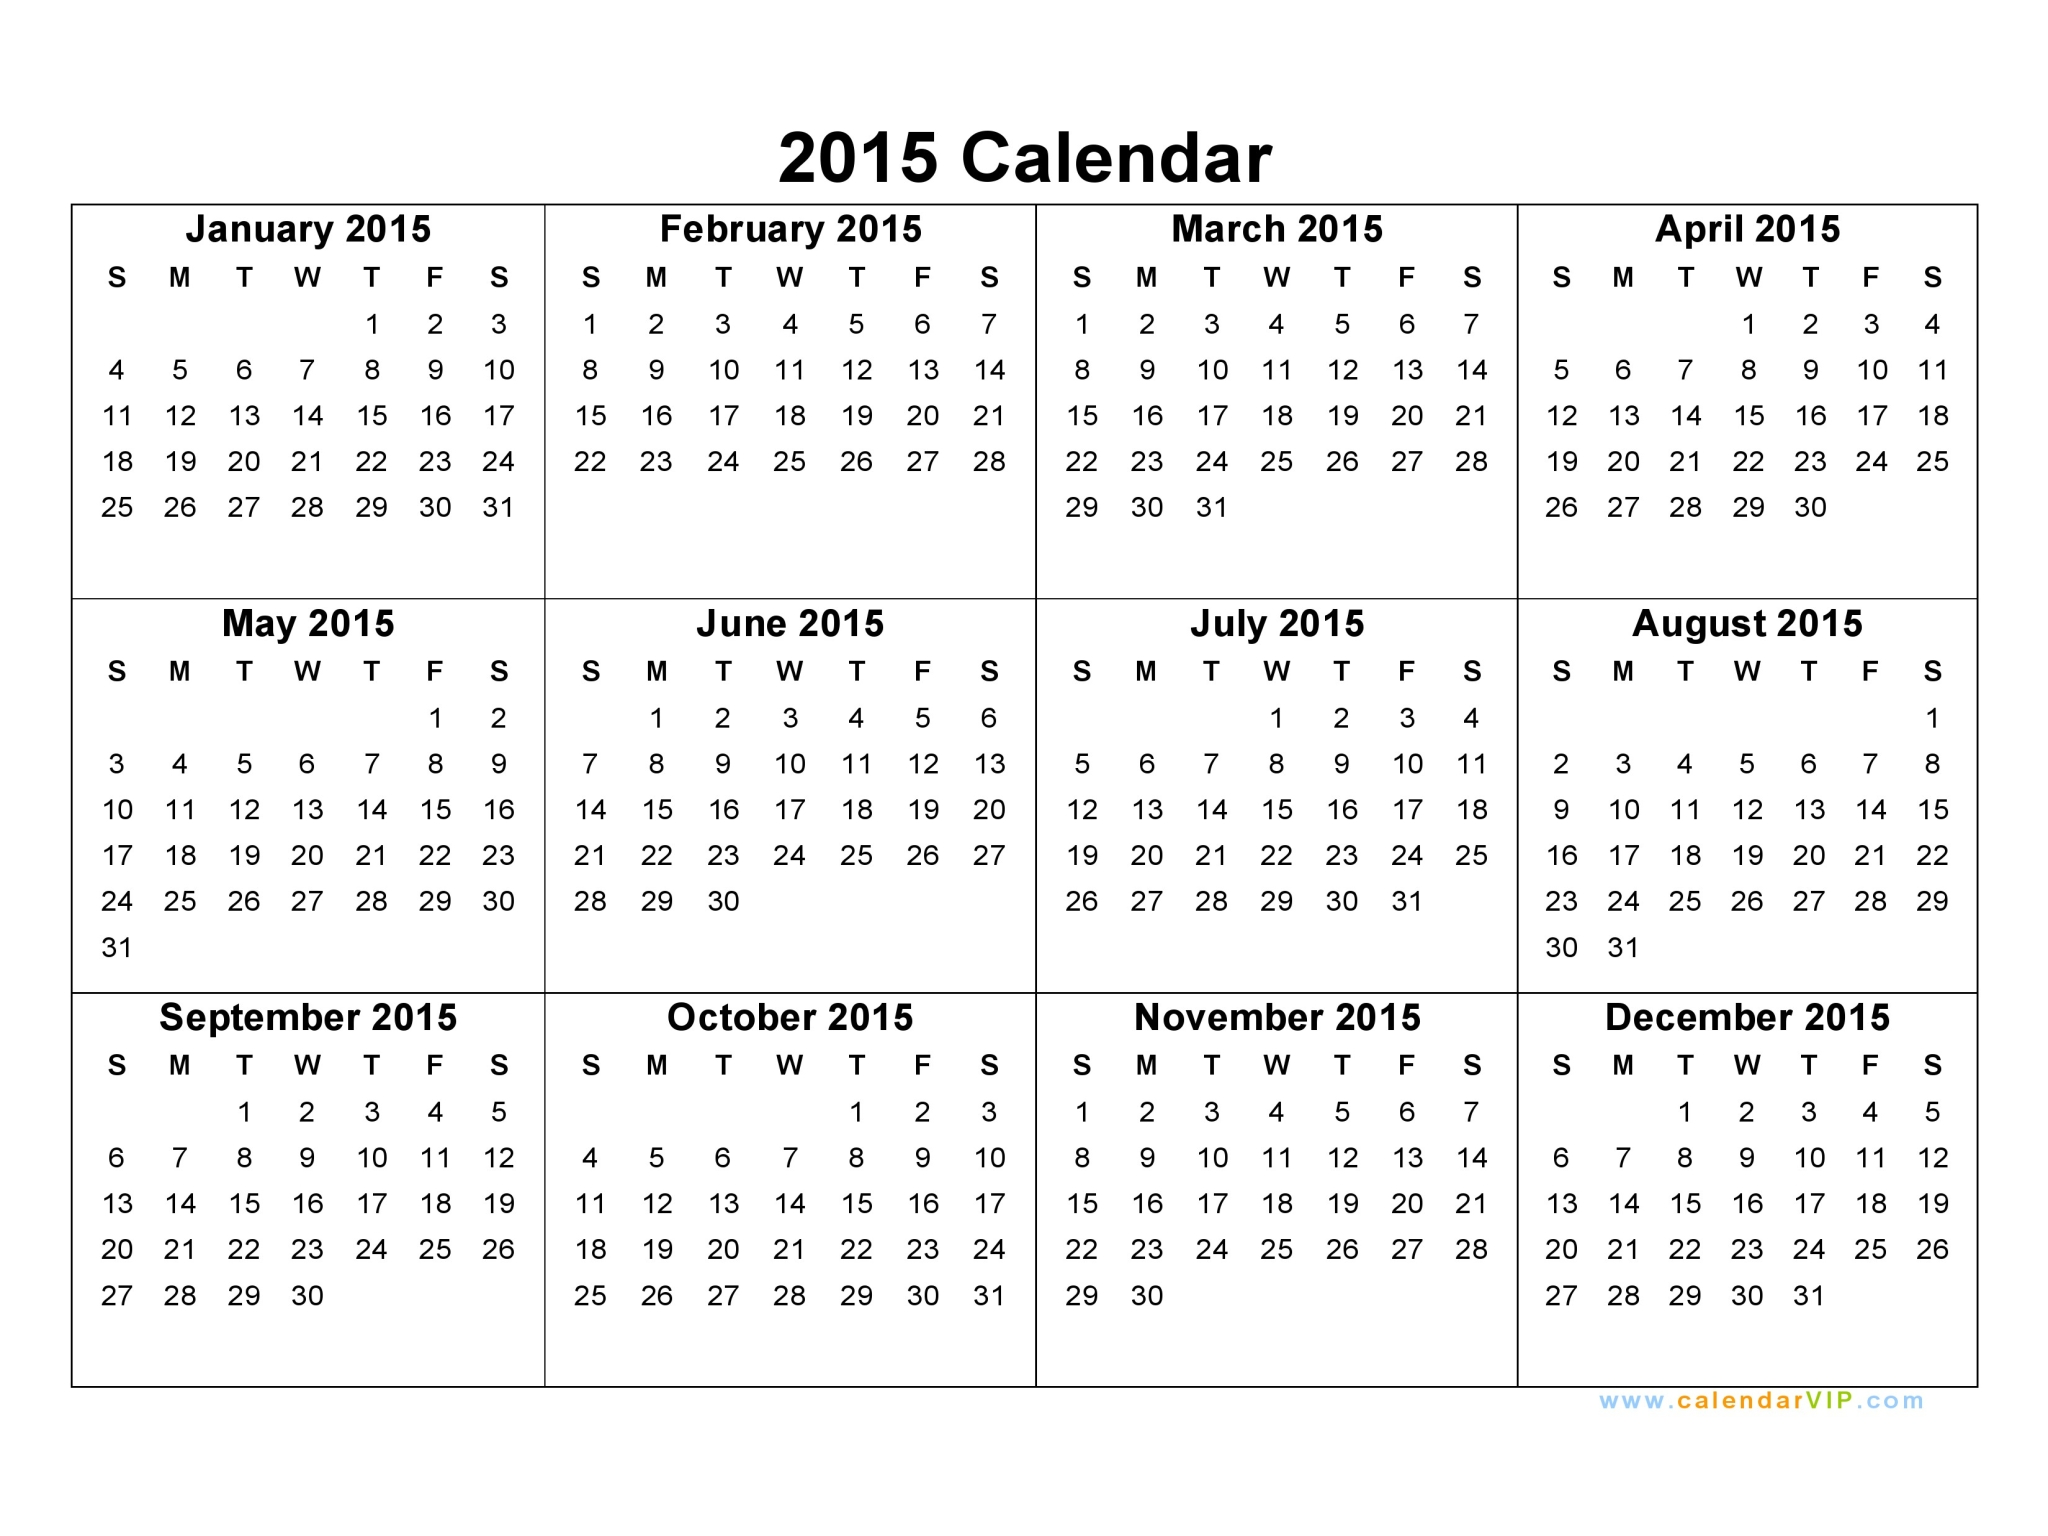 Yearly Calendar 2015 | 2017 calendar with holidays